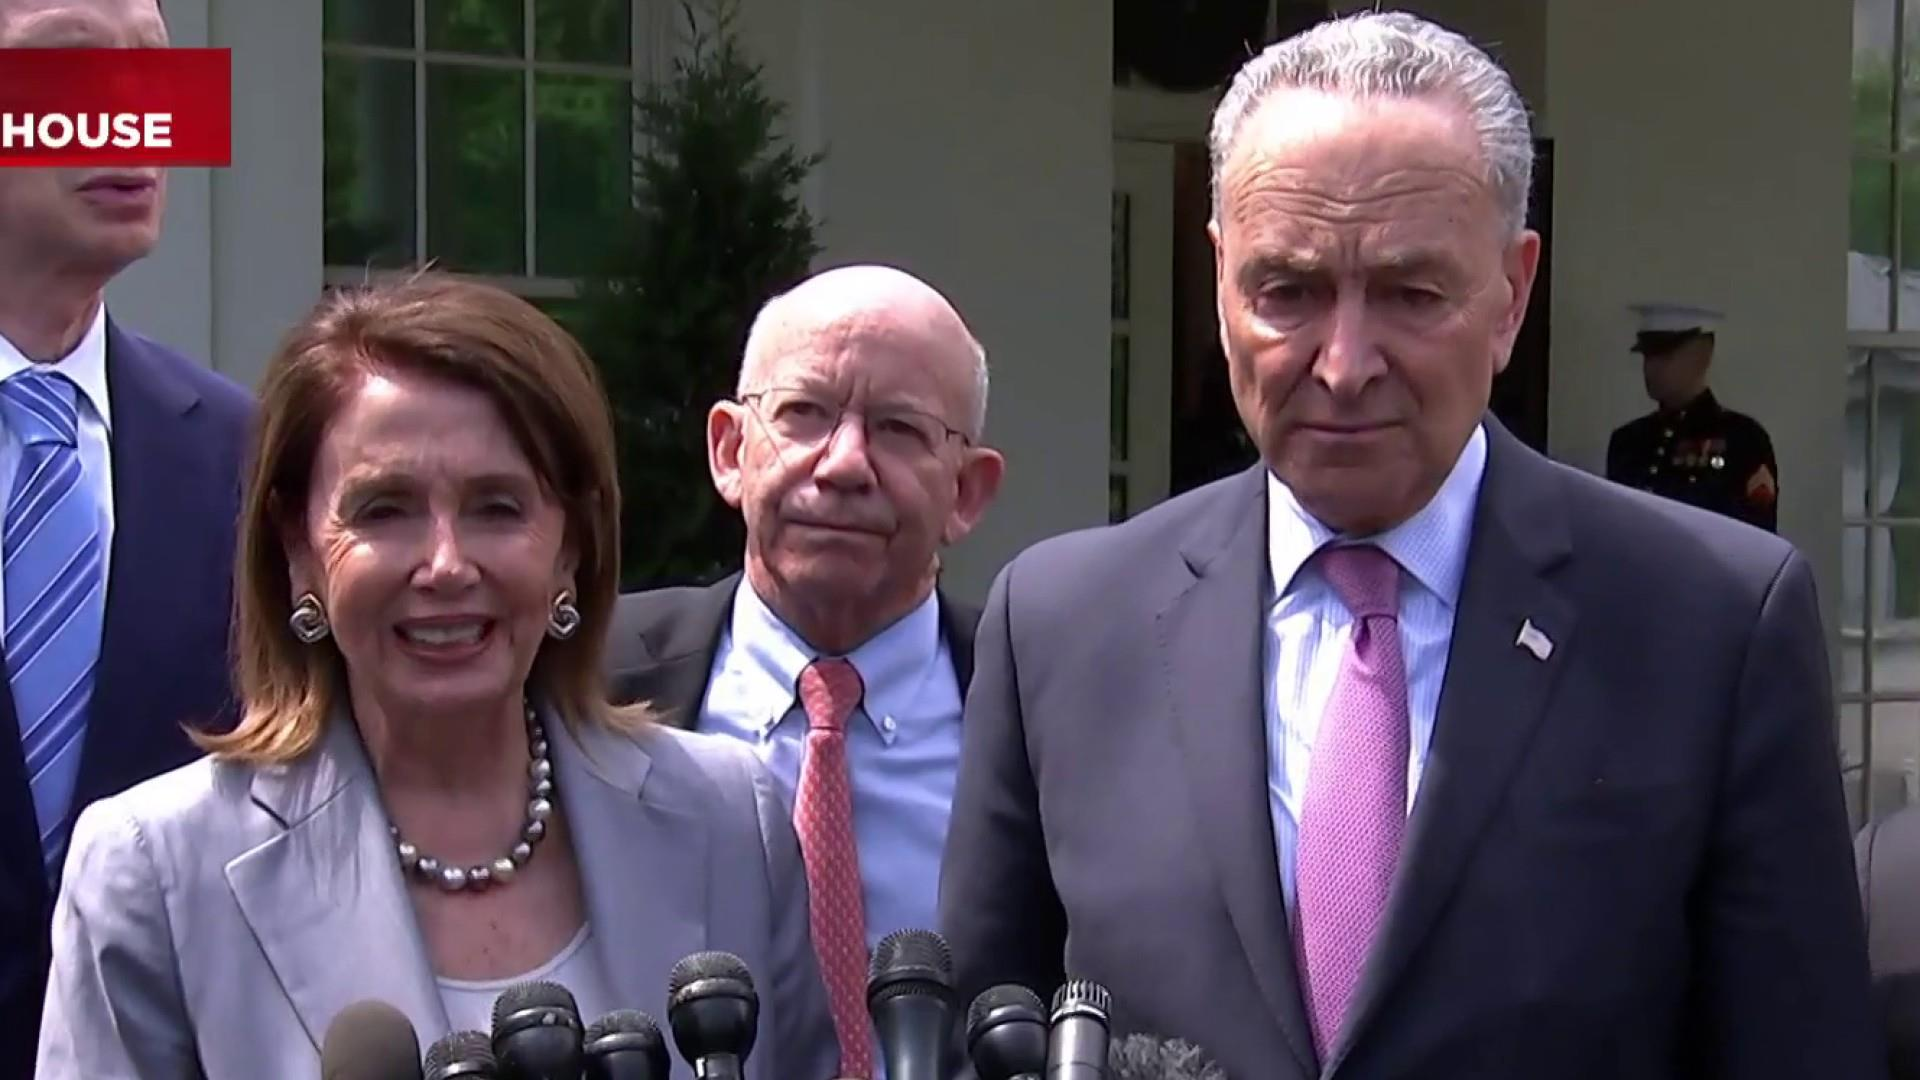 Pelosi, Schumer, and Trump agree on $2T infrastructure plan